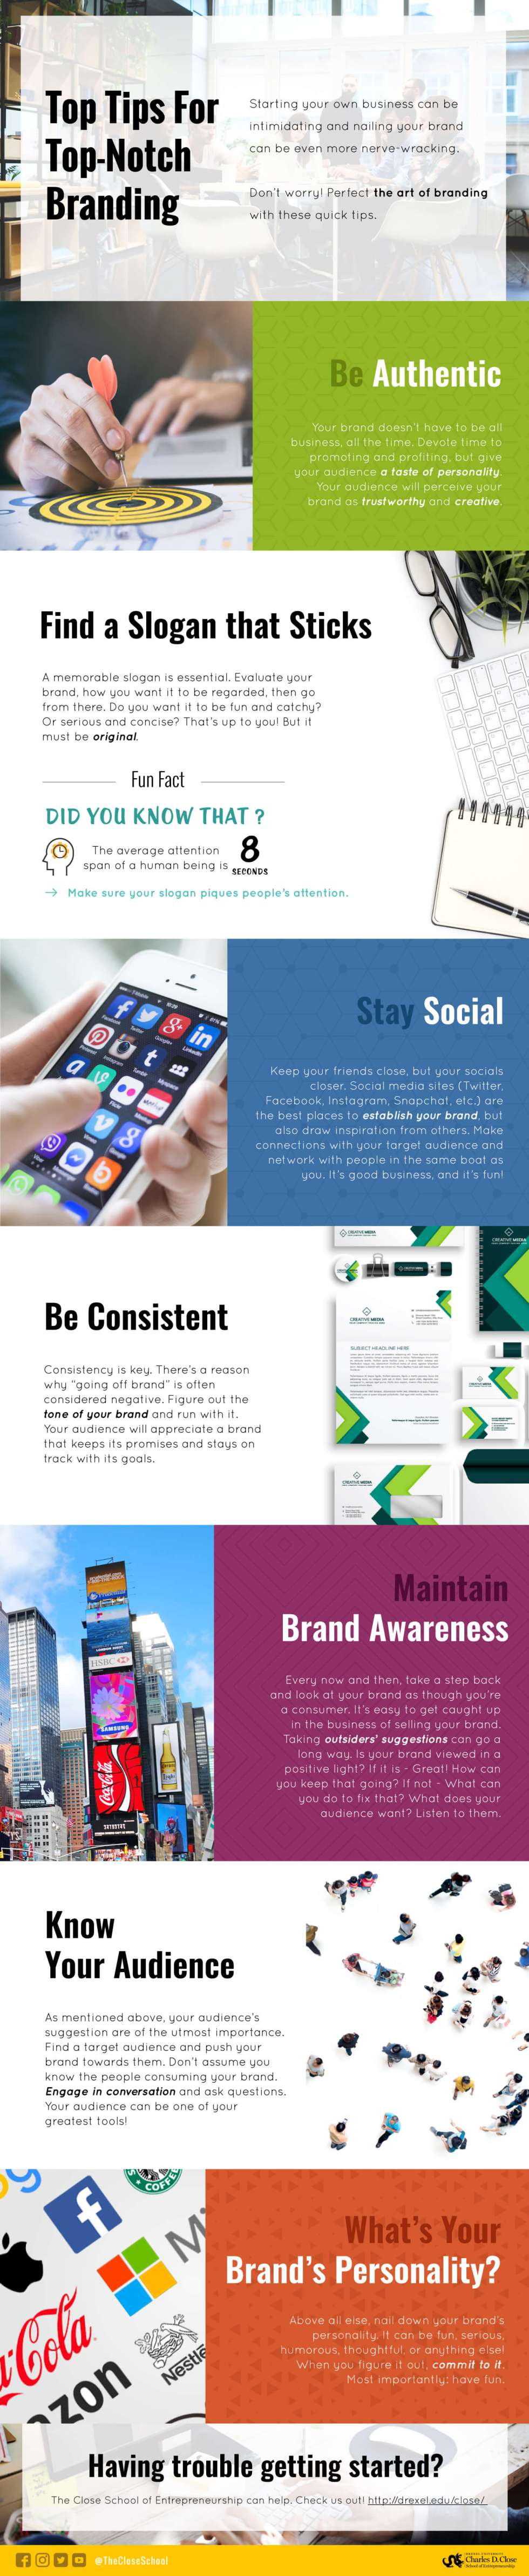 Infographic with top tips for branding. They are being authentic, finding a slogan, staying social, being consistent, having brad awareness, knowing your audience and knowing the brand's personality.